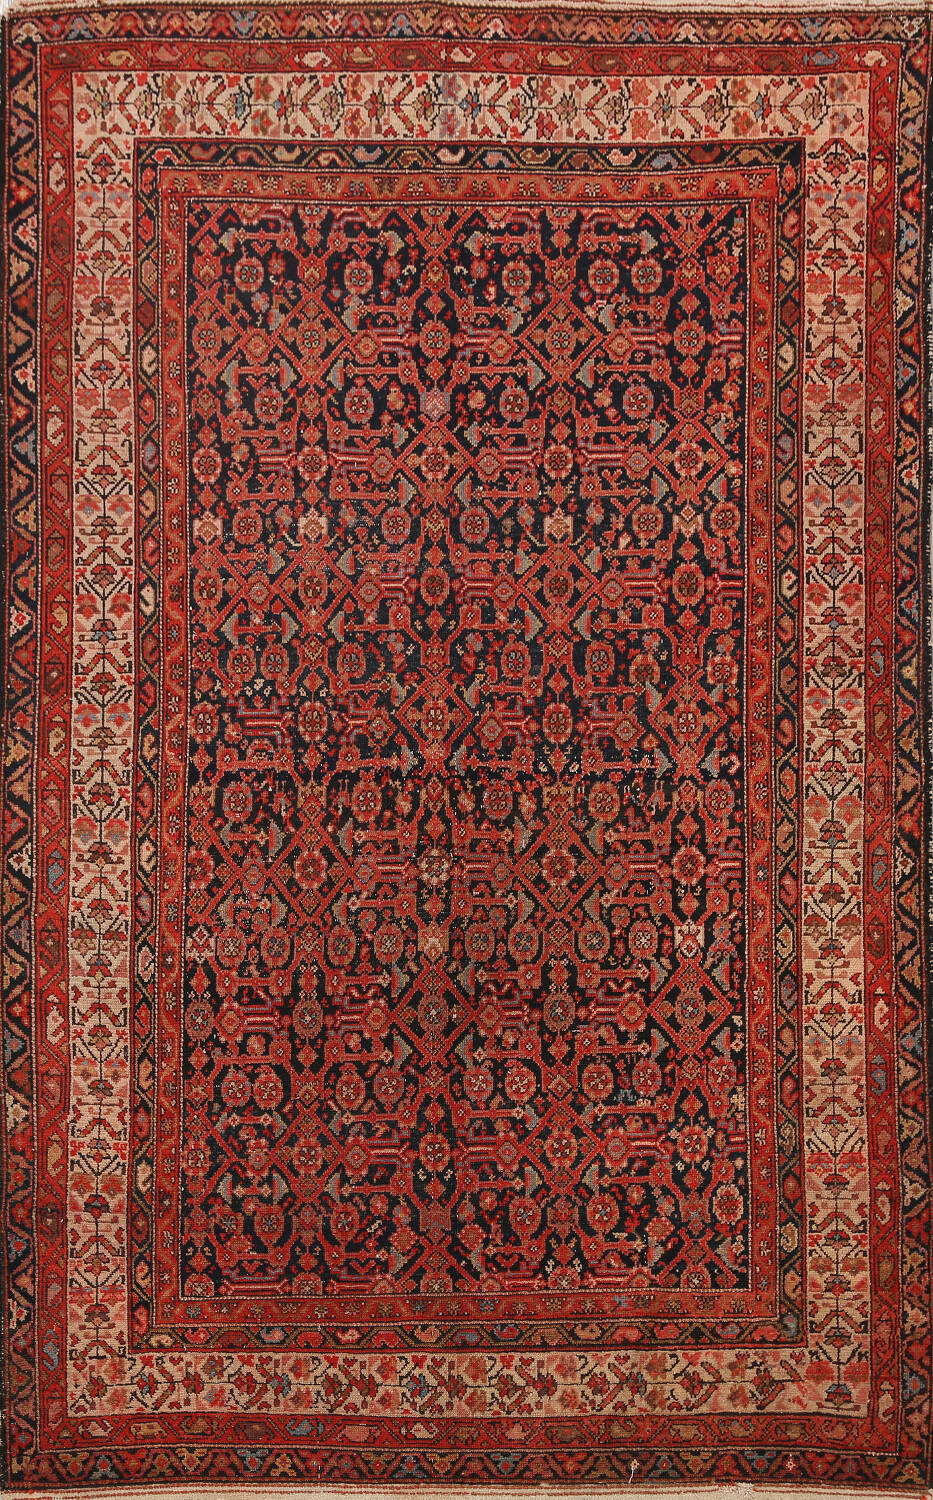 Pre-1900 Antique Malayer Vegetable Dye Persian Area Rug 5x7 image 1